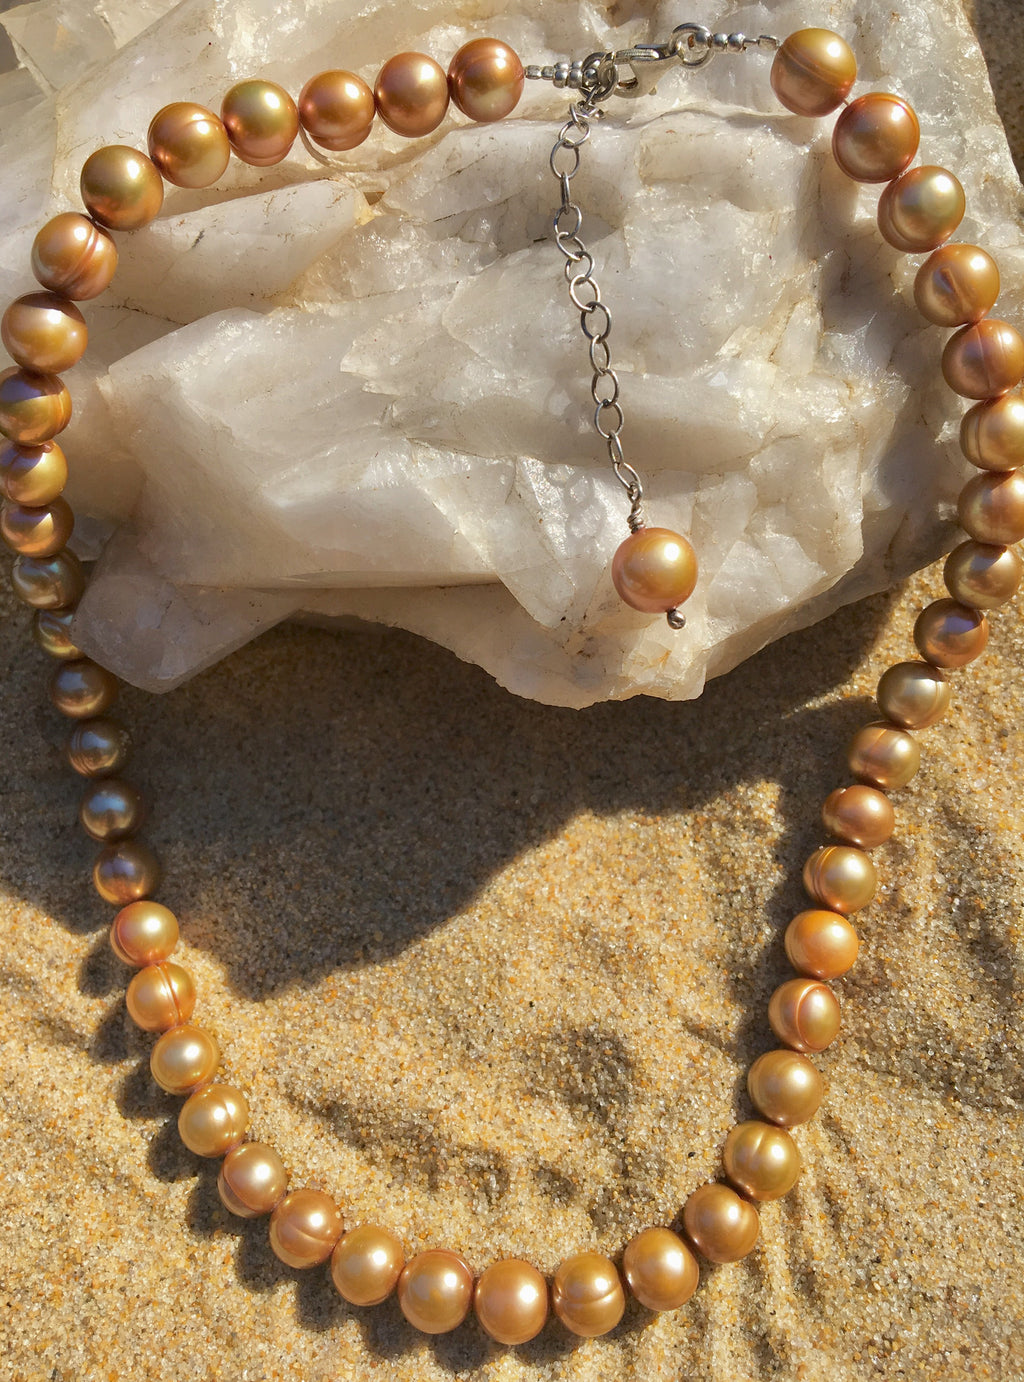 Pearl necklace with butterscotch pearls-Jenstones Jewelry